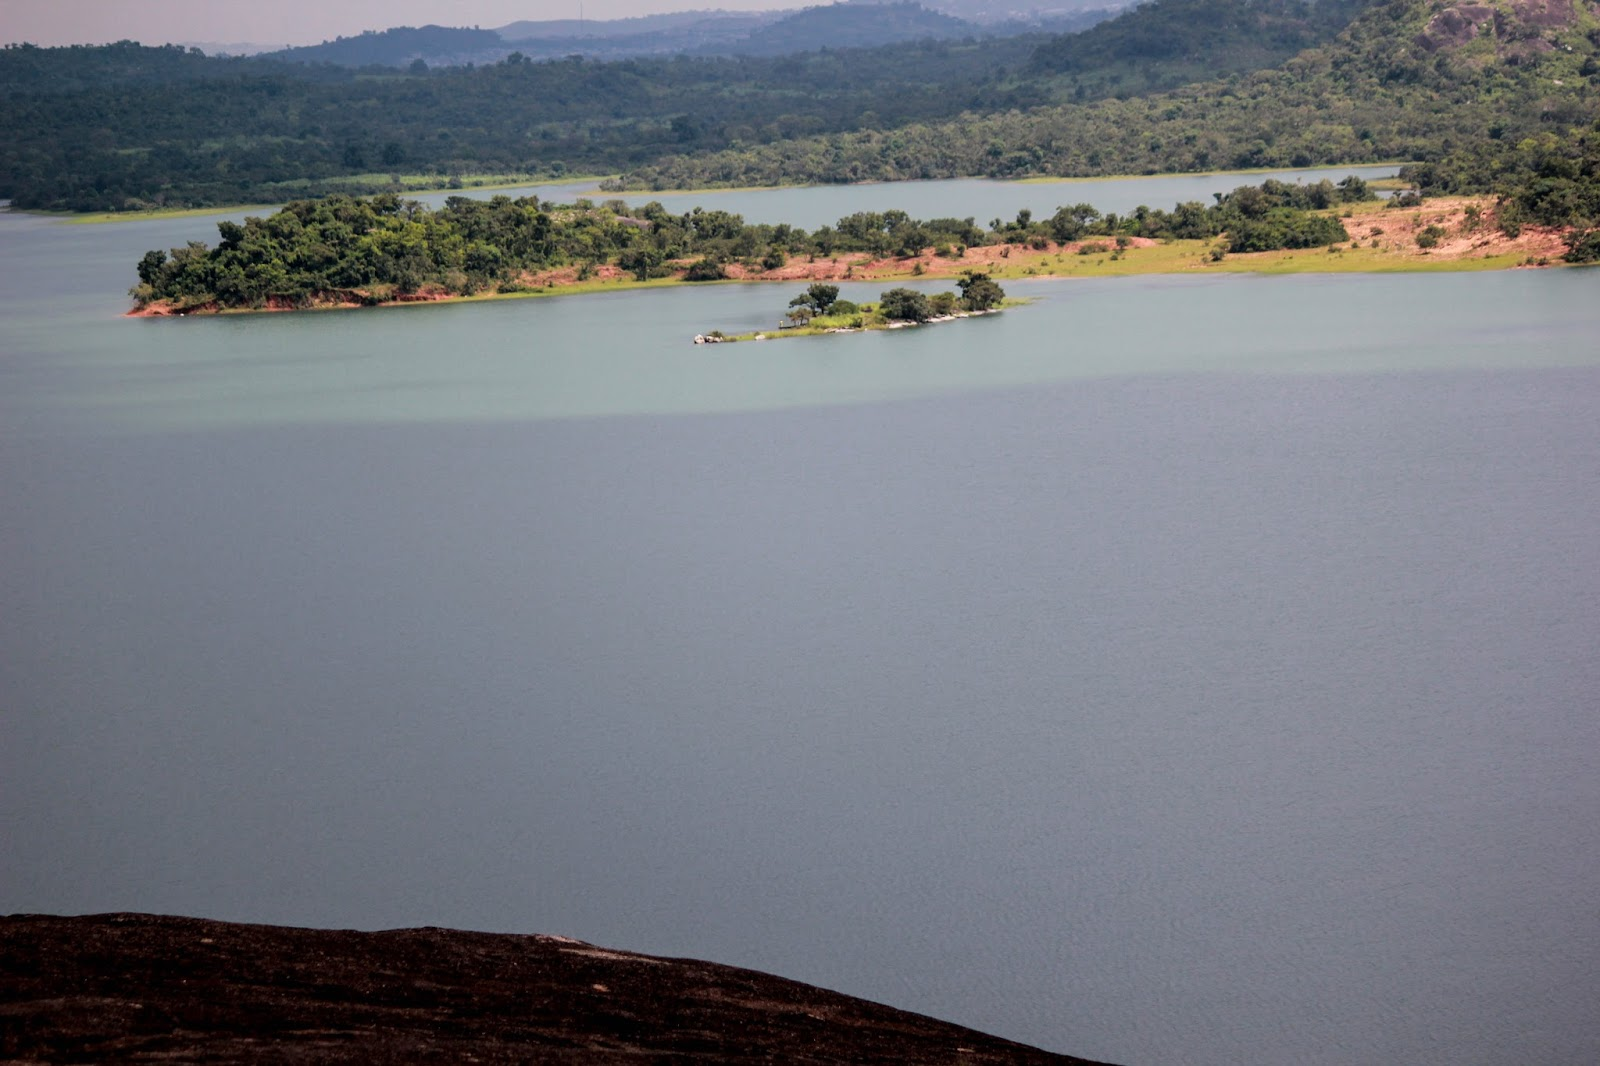 TRIPPING TO USUMA DAM - Usuma Dam Water Treatment Plant, Bwari, Abuja